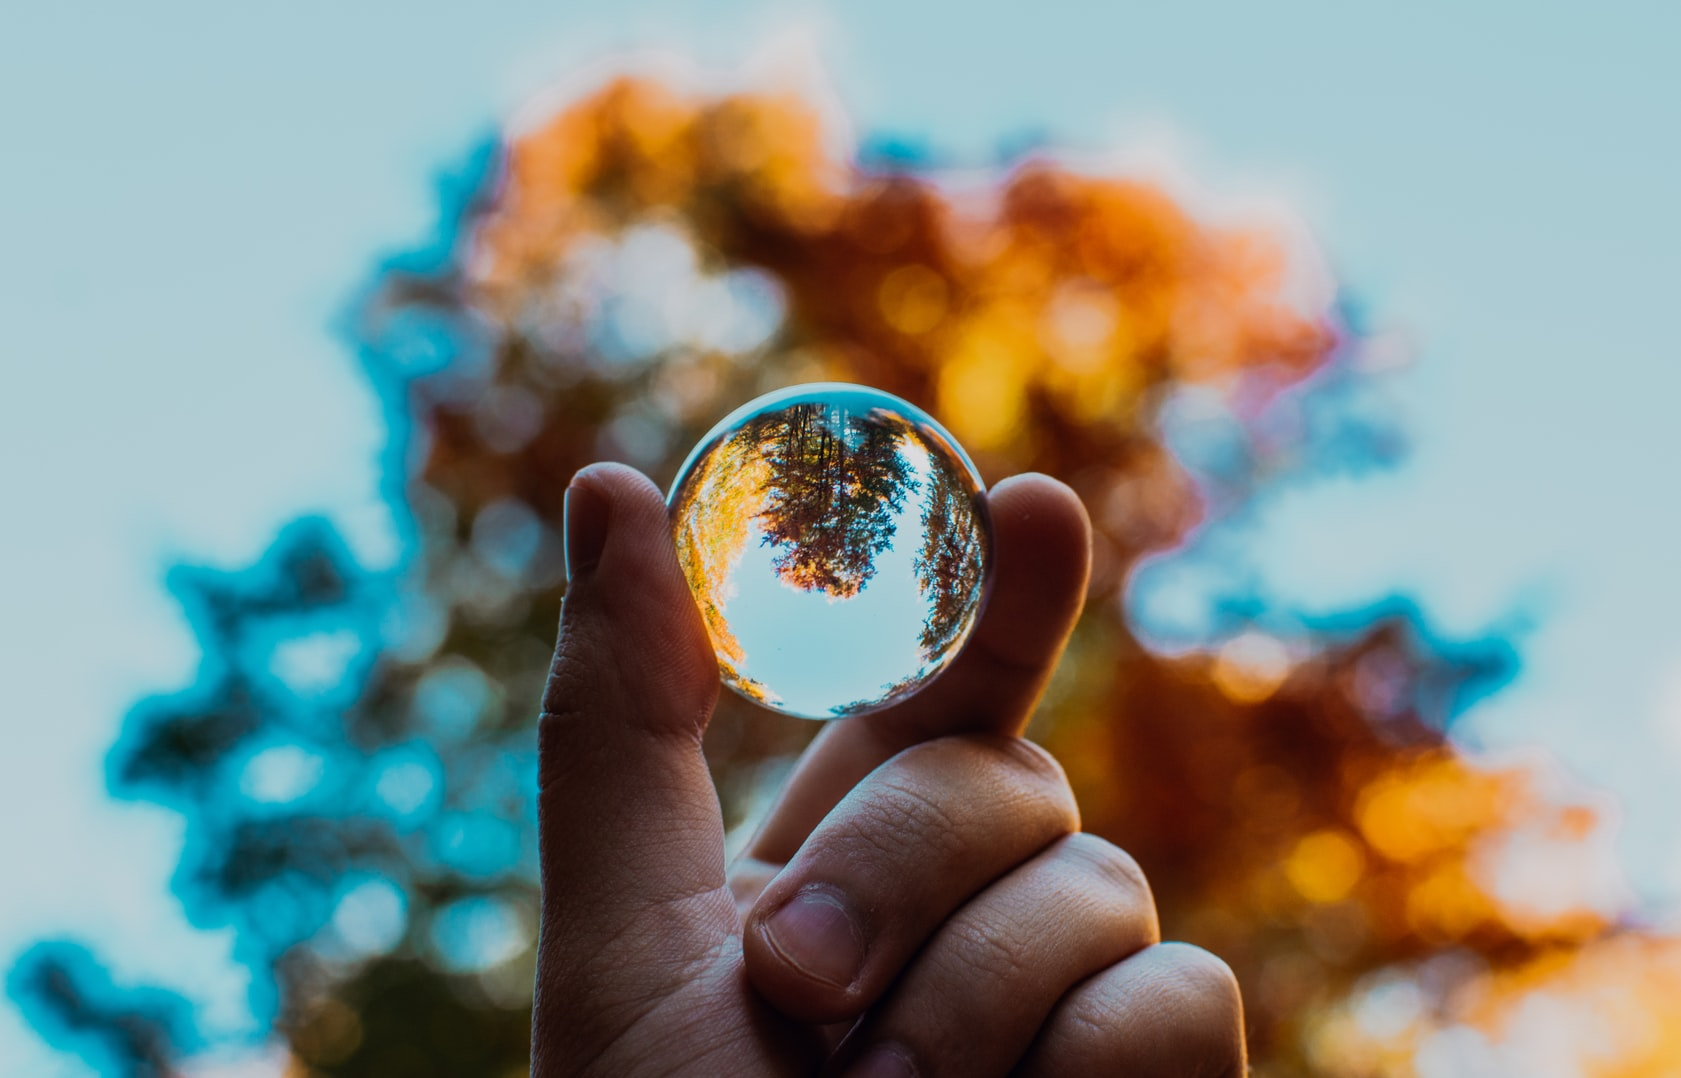 Selective focus photography of hand holding crystal ball